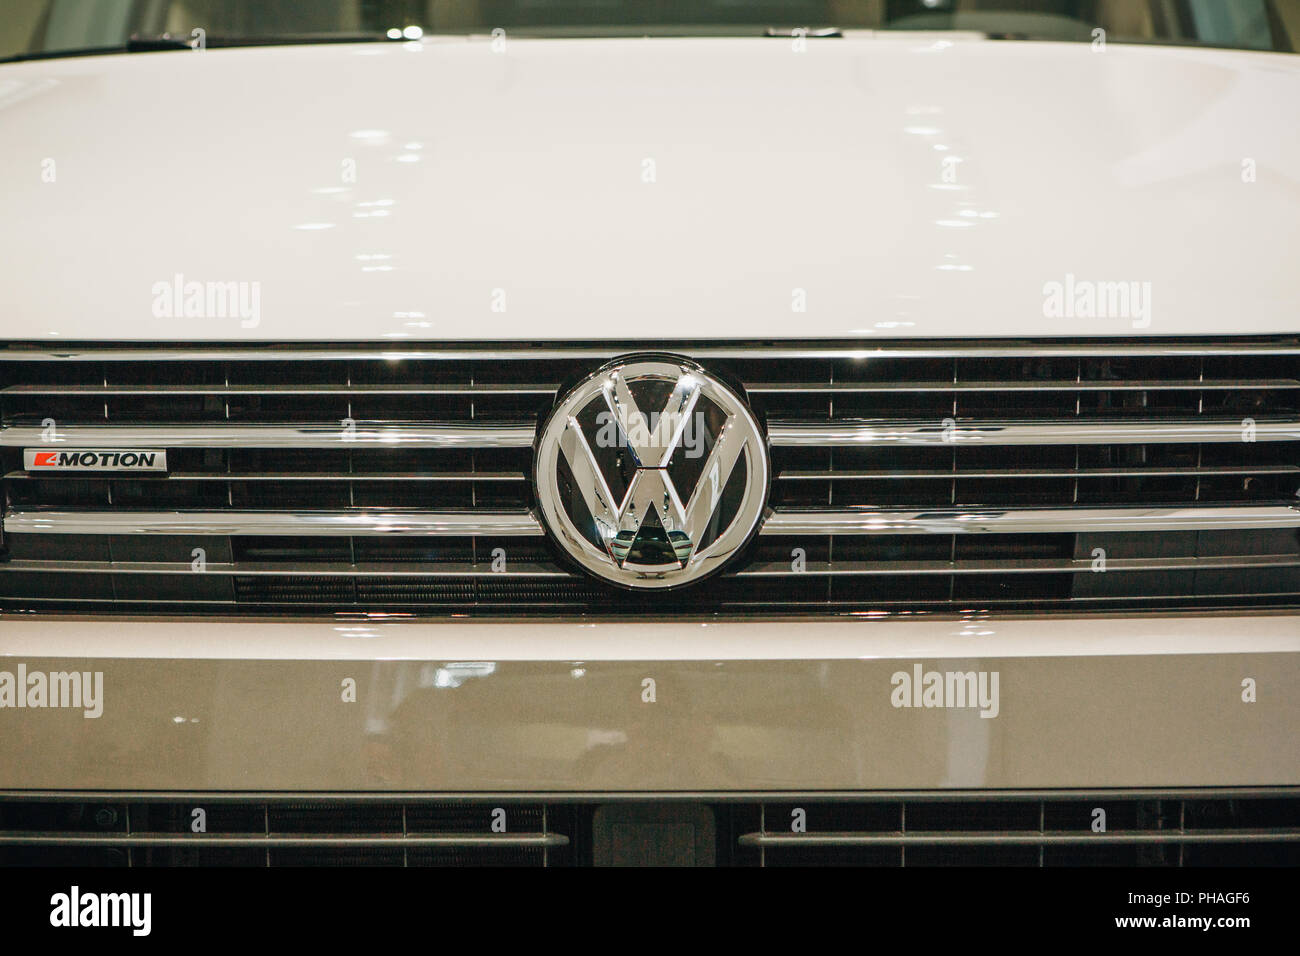 Berlin, August 29, 2018: Close-up sign VW on new Volkswagen multivan presented at the official Auto Show Drive - Volkswagen Group Forum in Berlin. - Stock Image